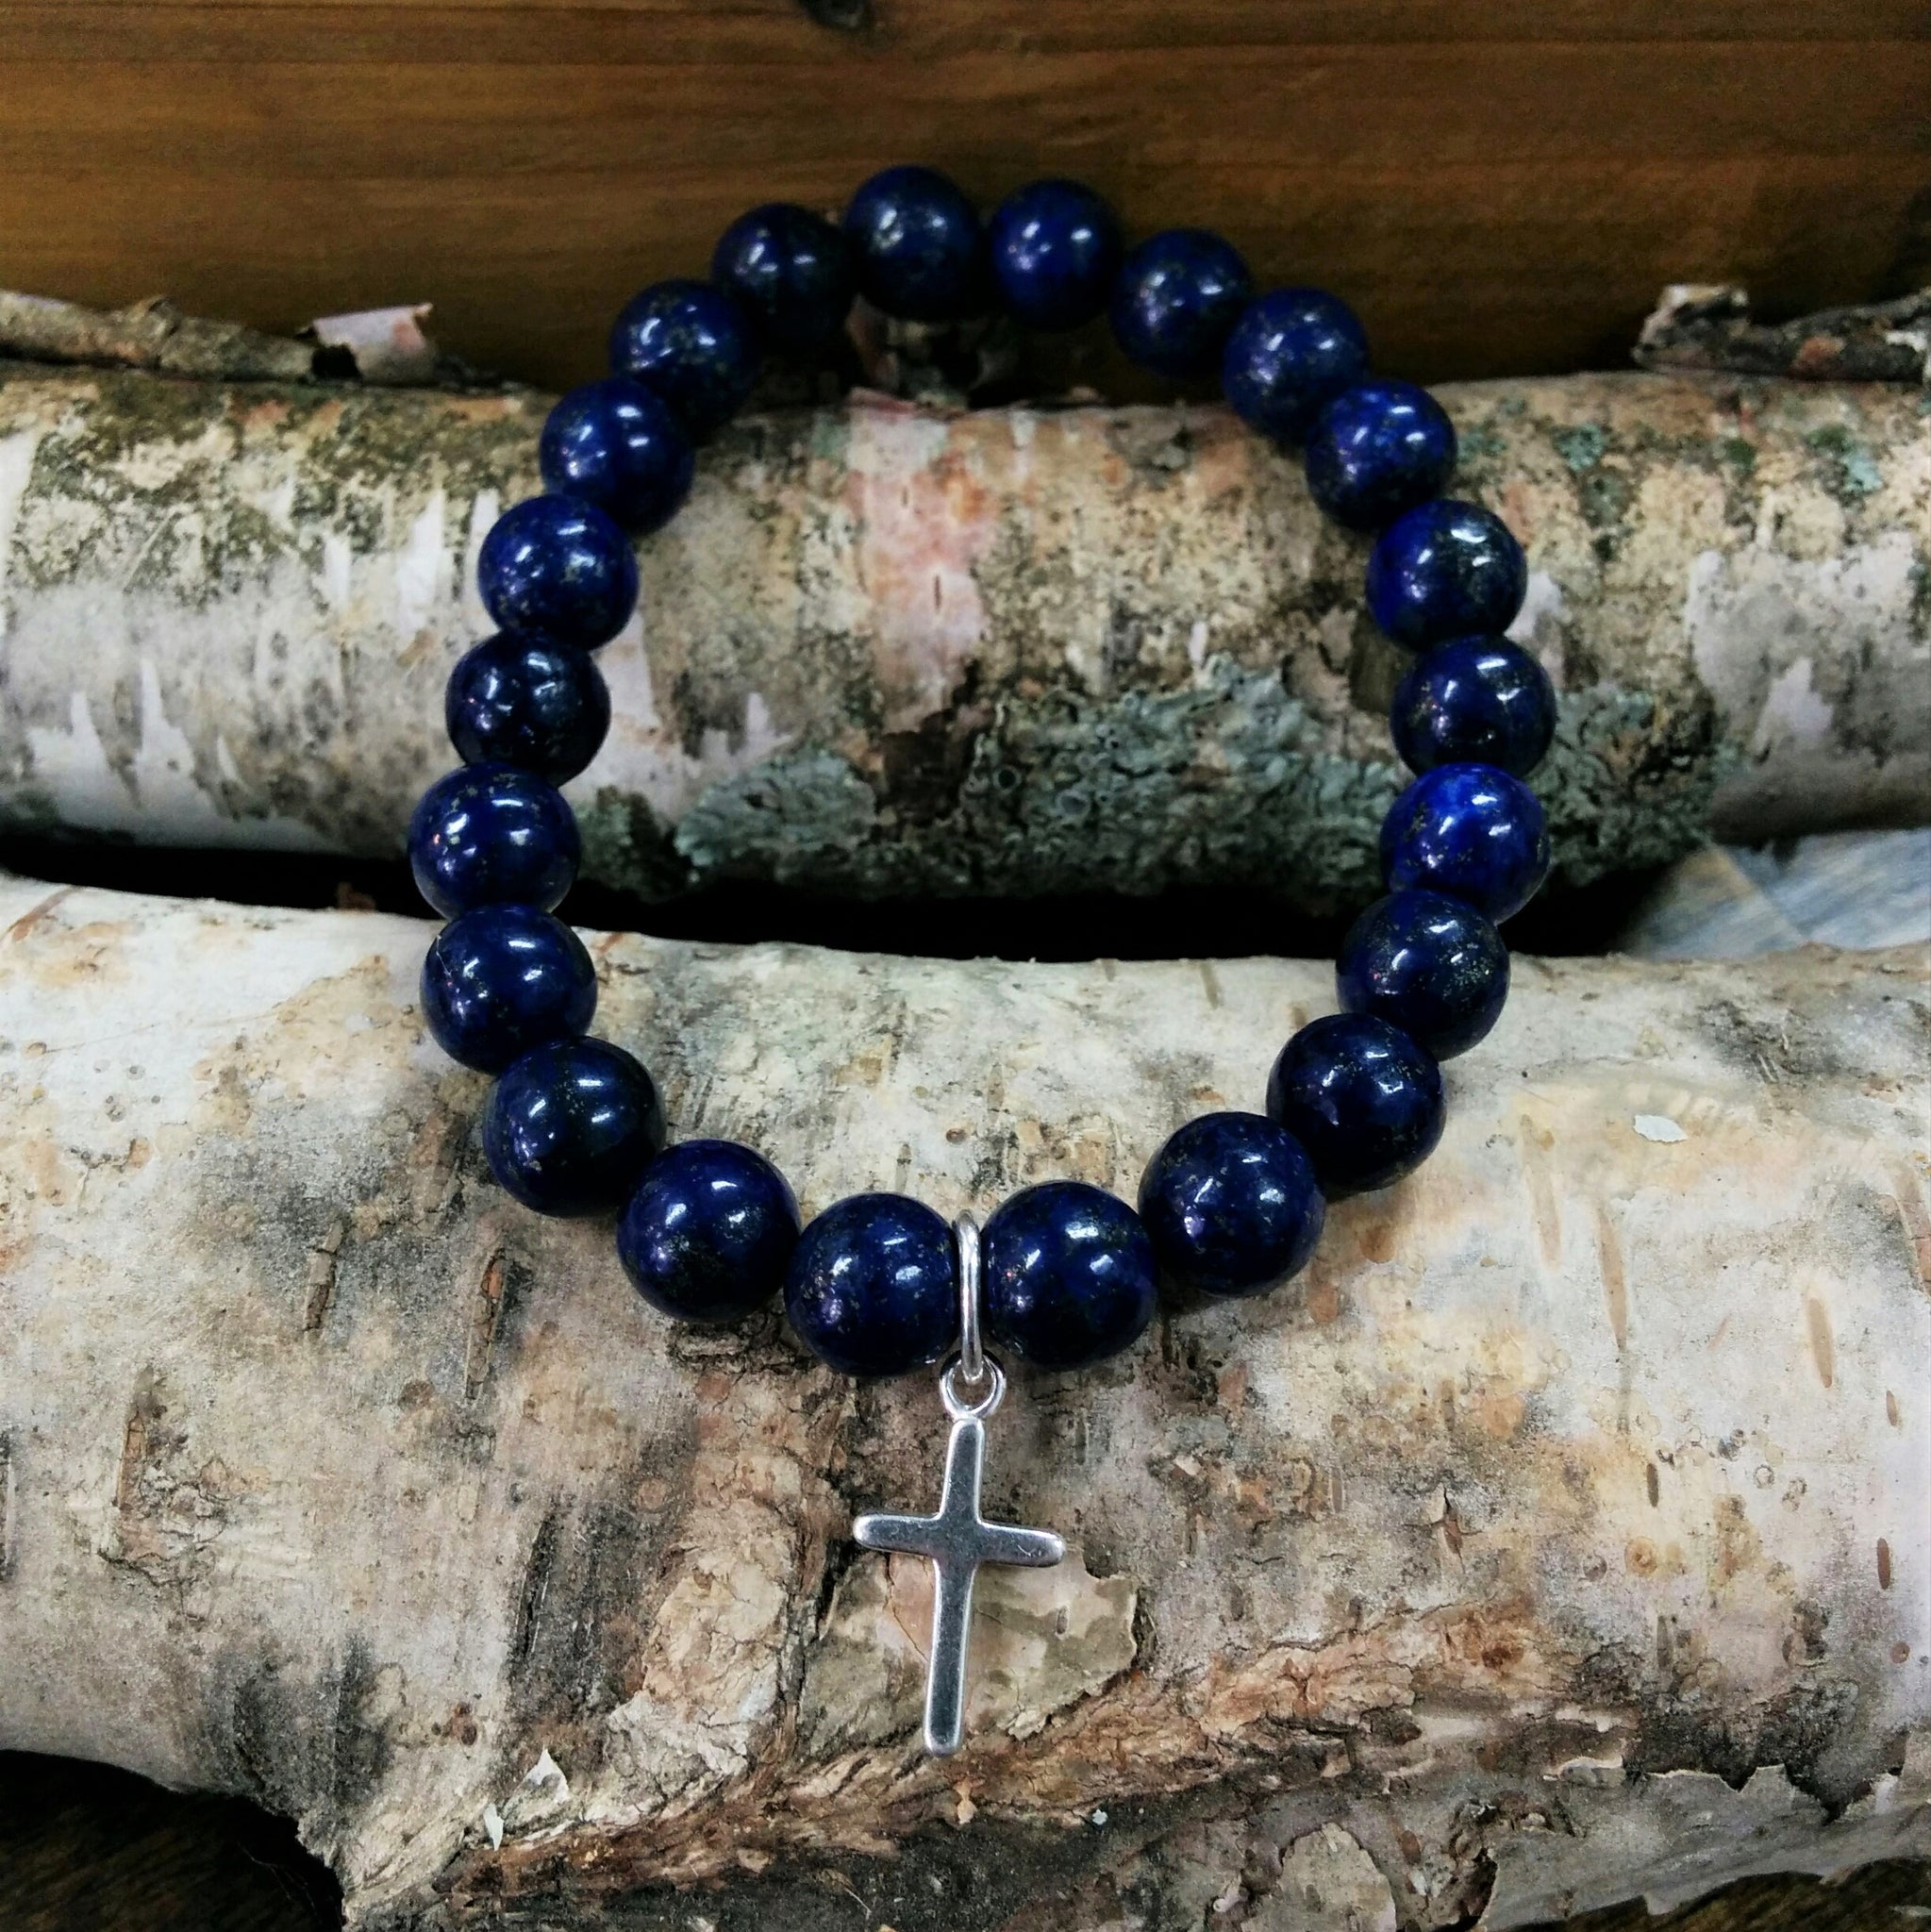 Stone Bracelet - Lapis Lazuli with Sterling Silver Cross Charm